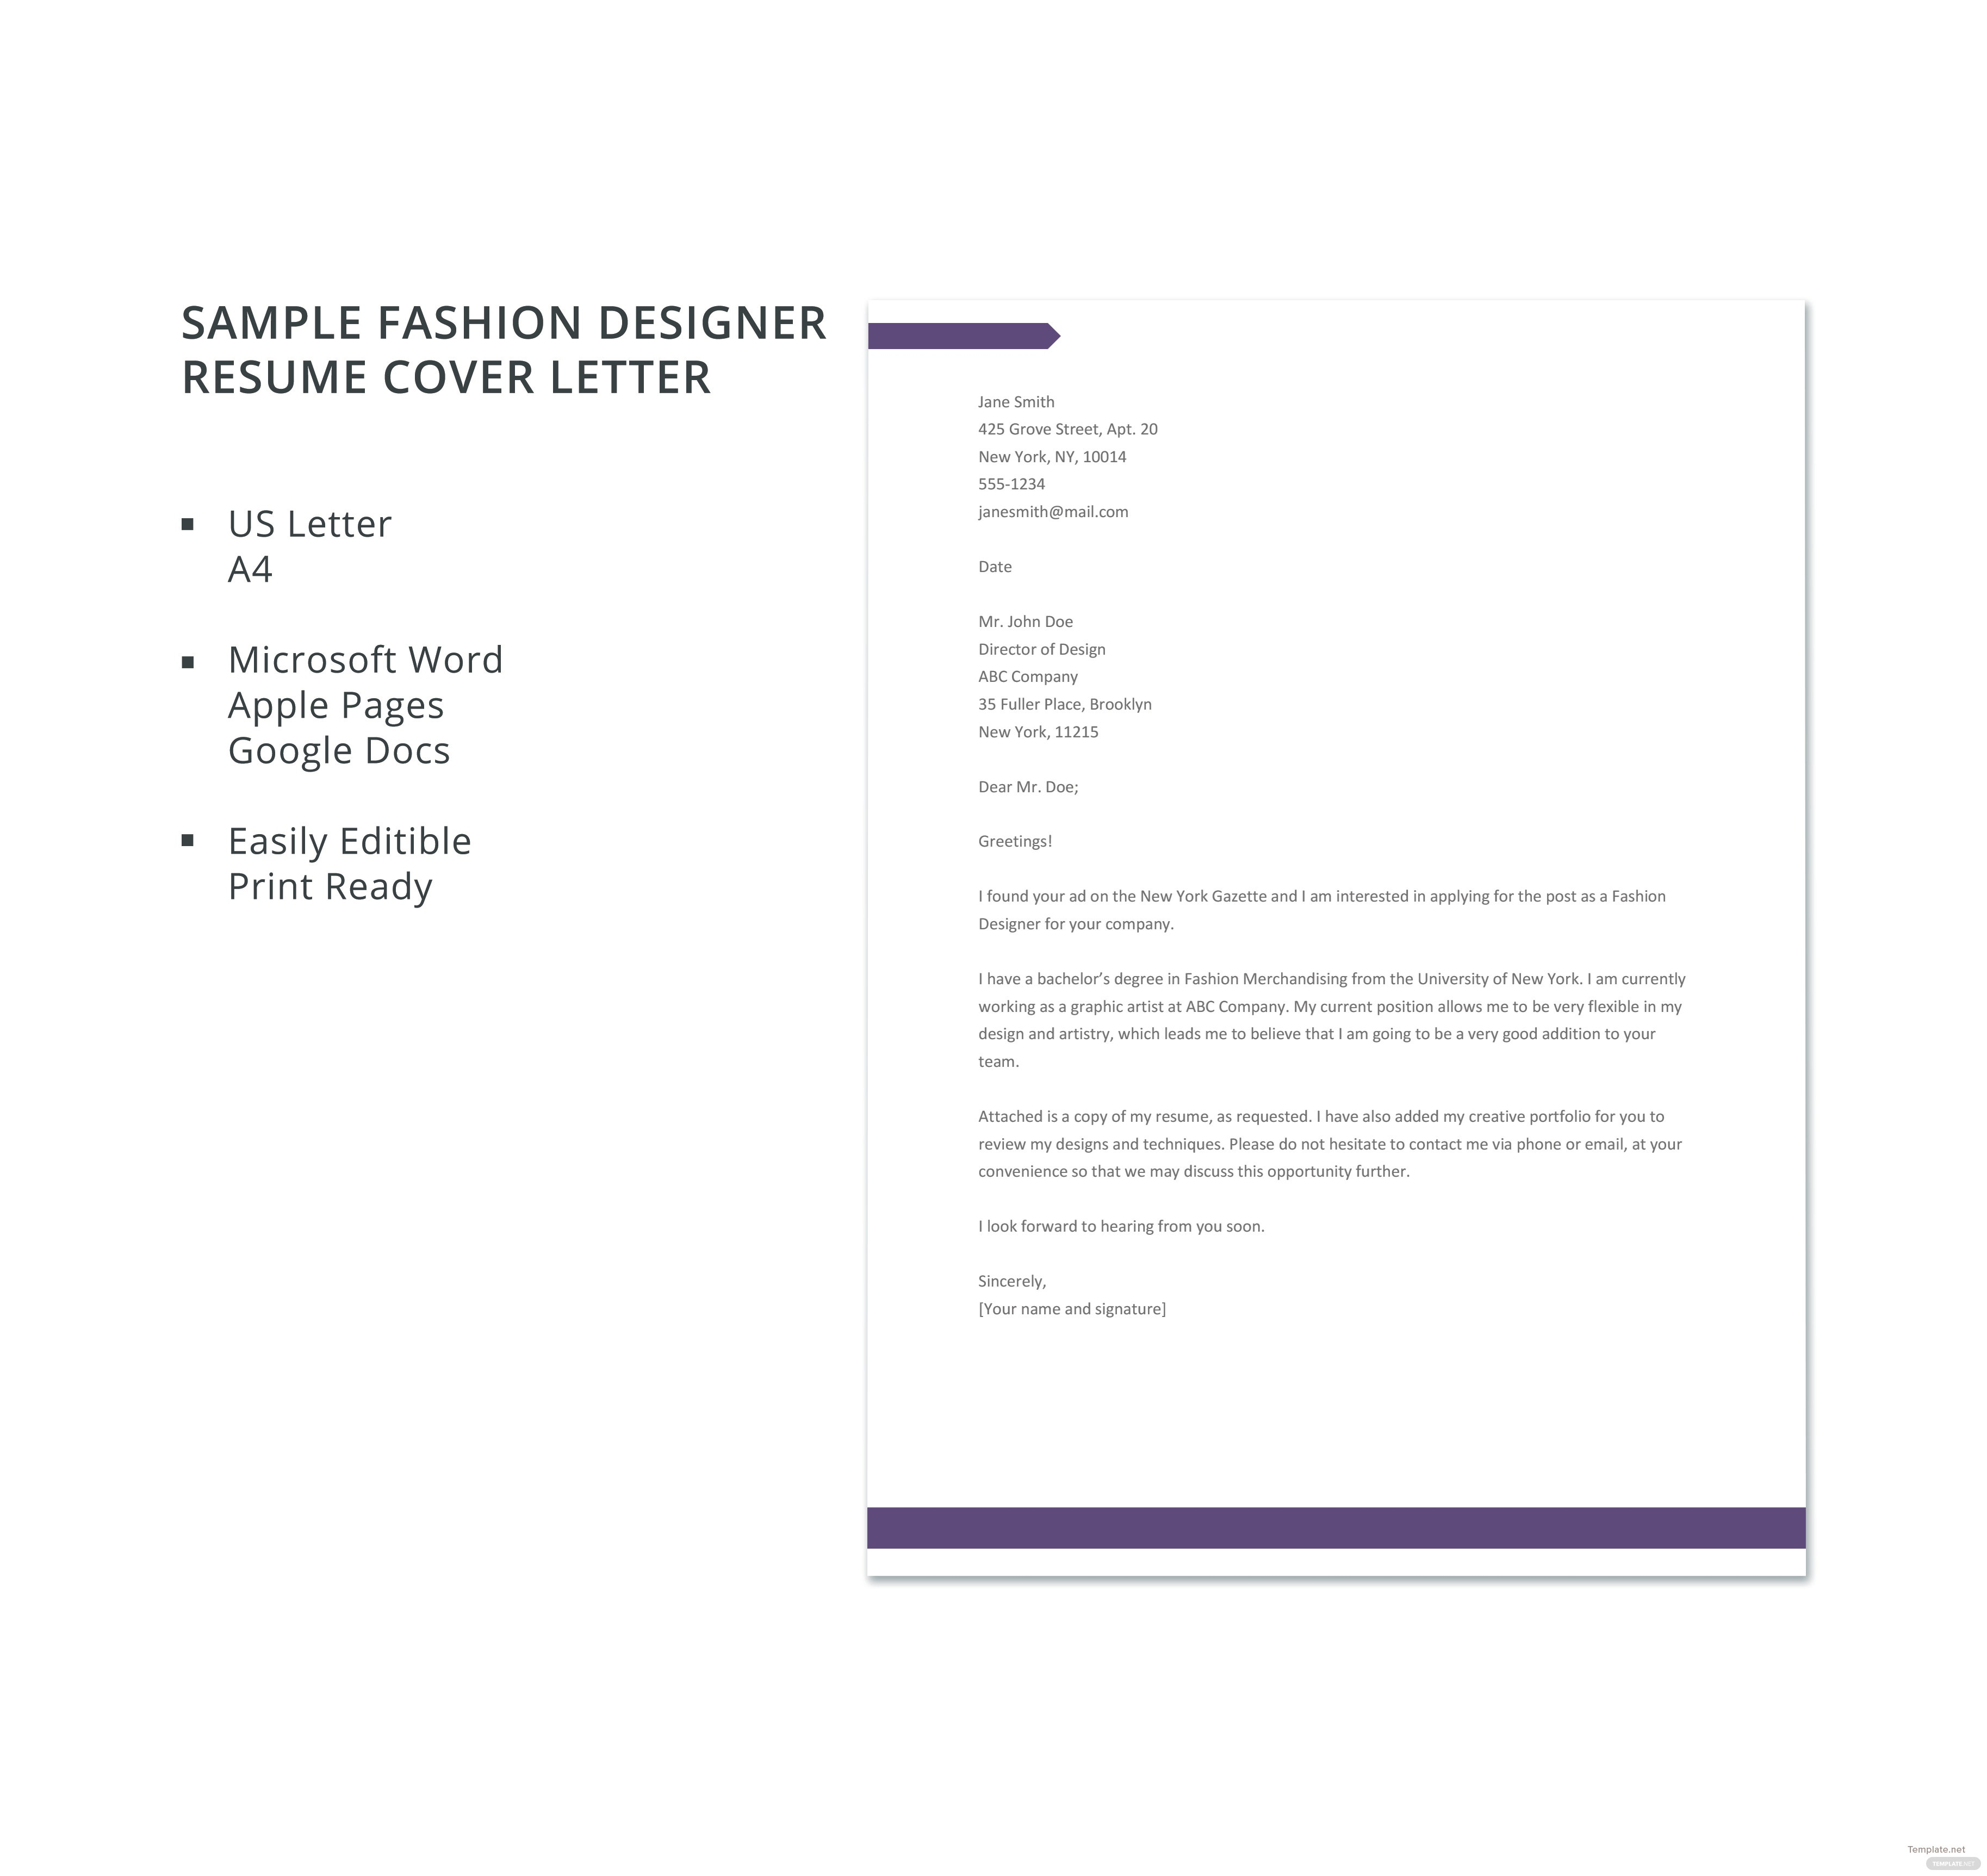 Free sample fashion designer resume cover letter template in sample fashion designer resume cover letter template madrichimfo Gallery